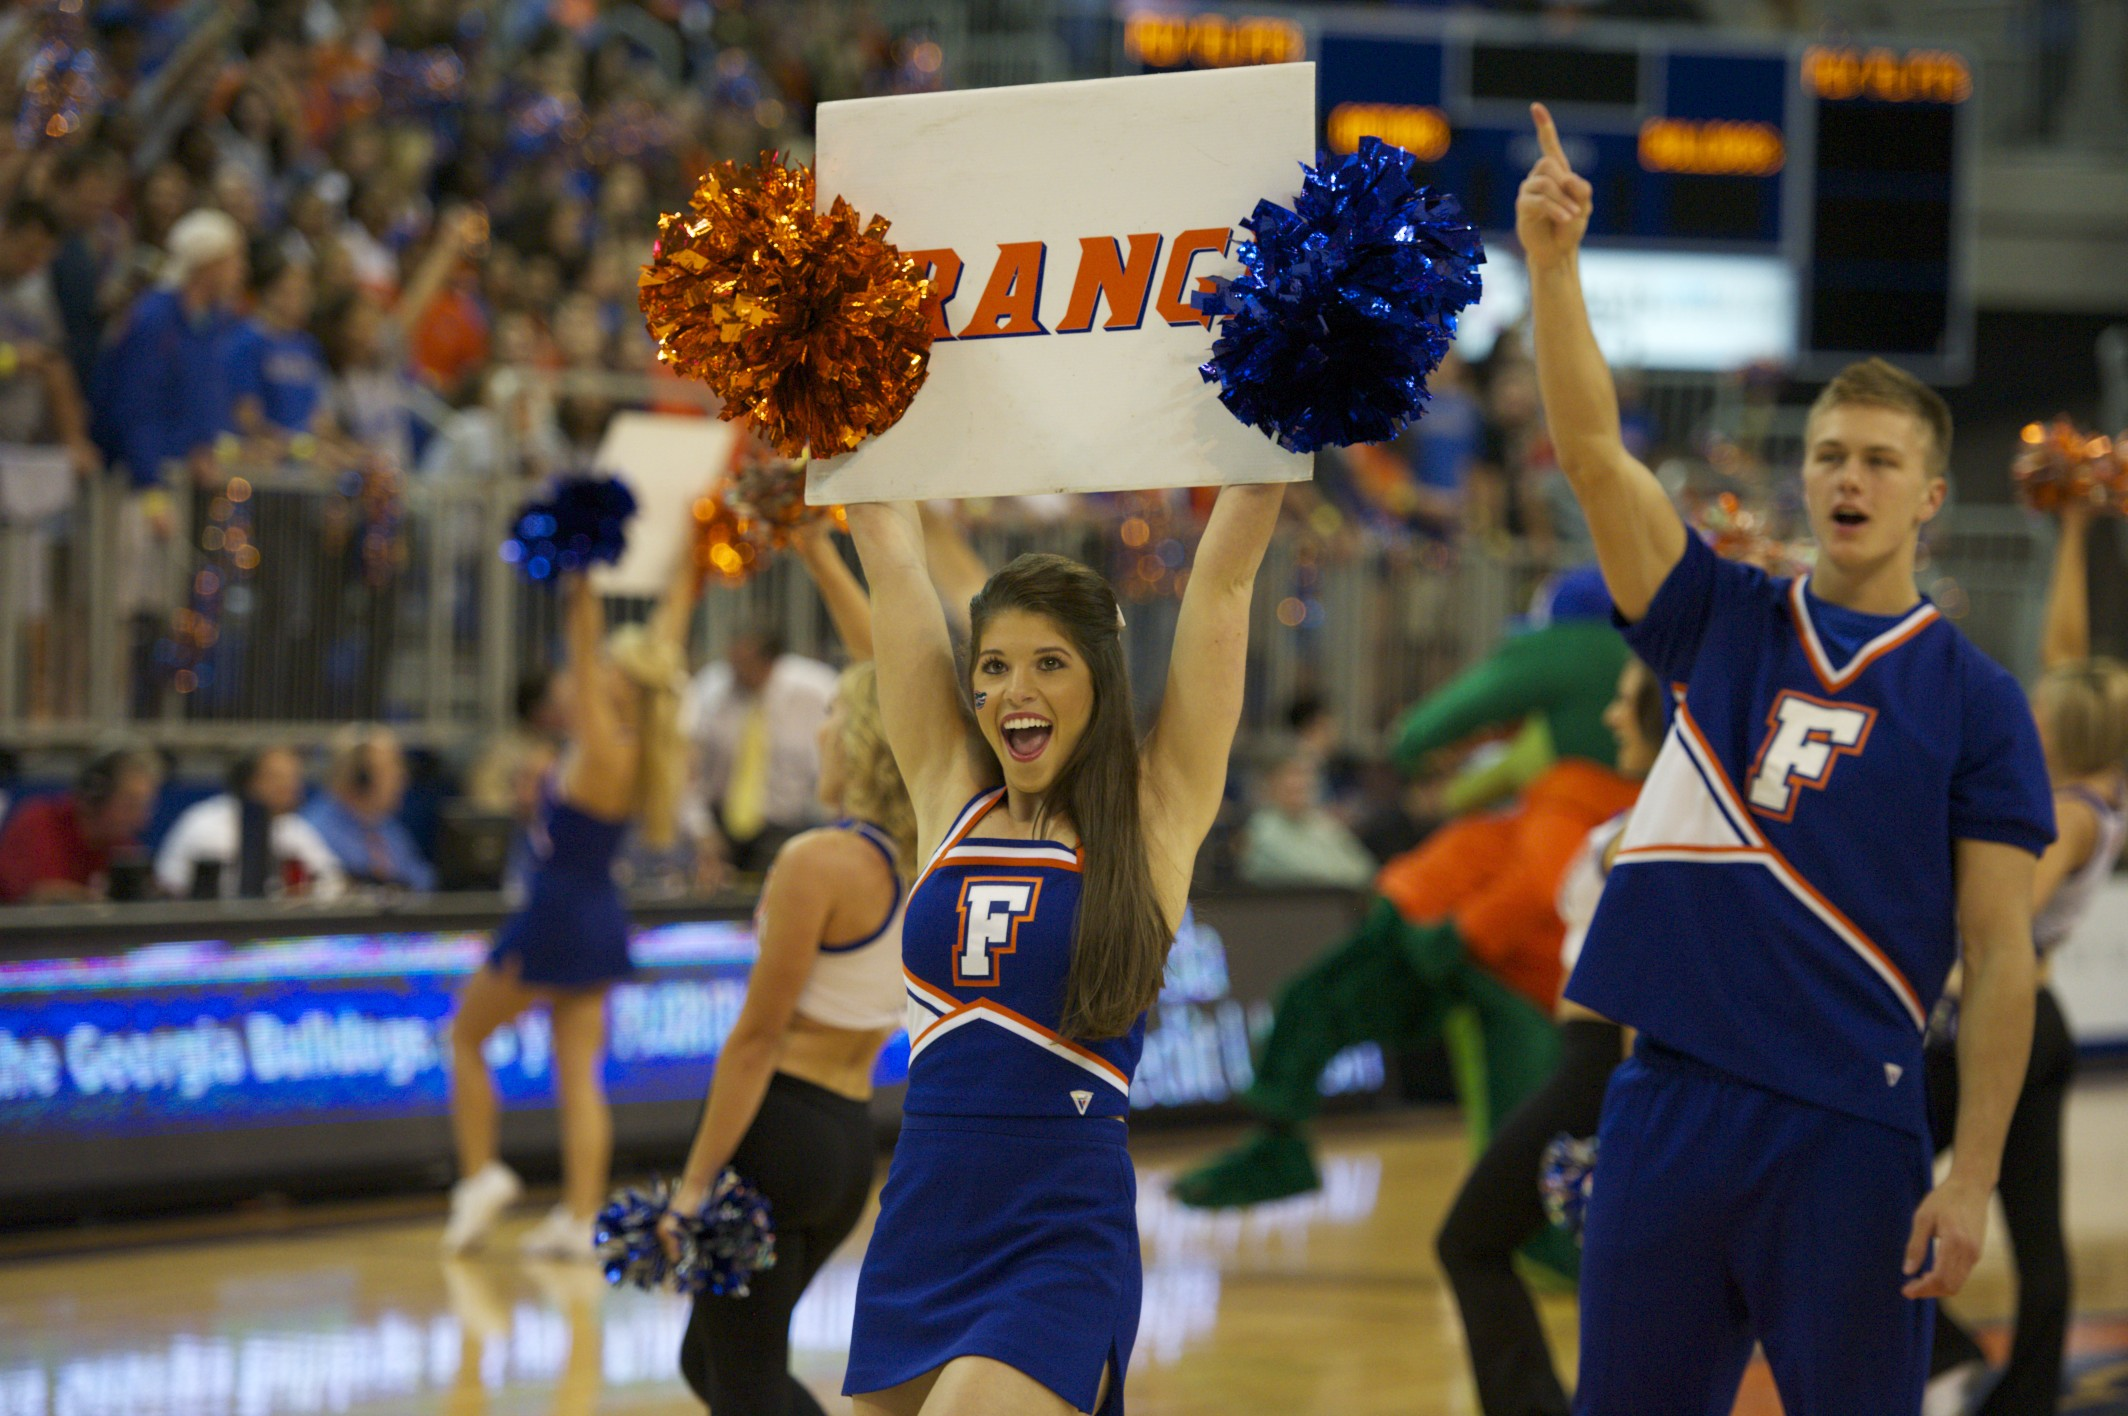 Florida cheerleaders rally fans before the game against the Georgia Bulldogs Wednesday night.